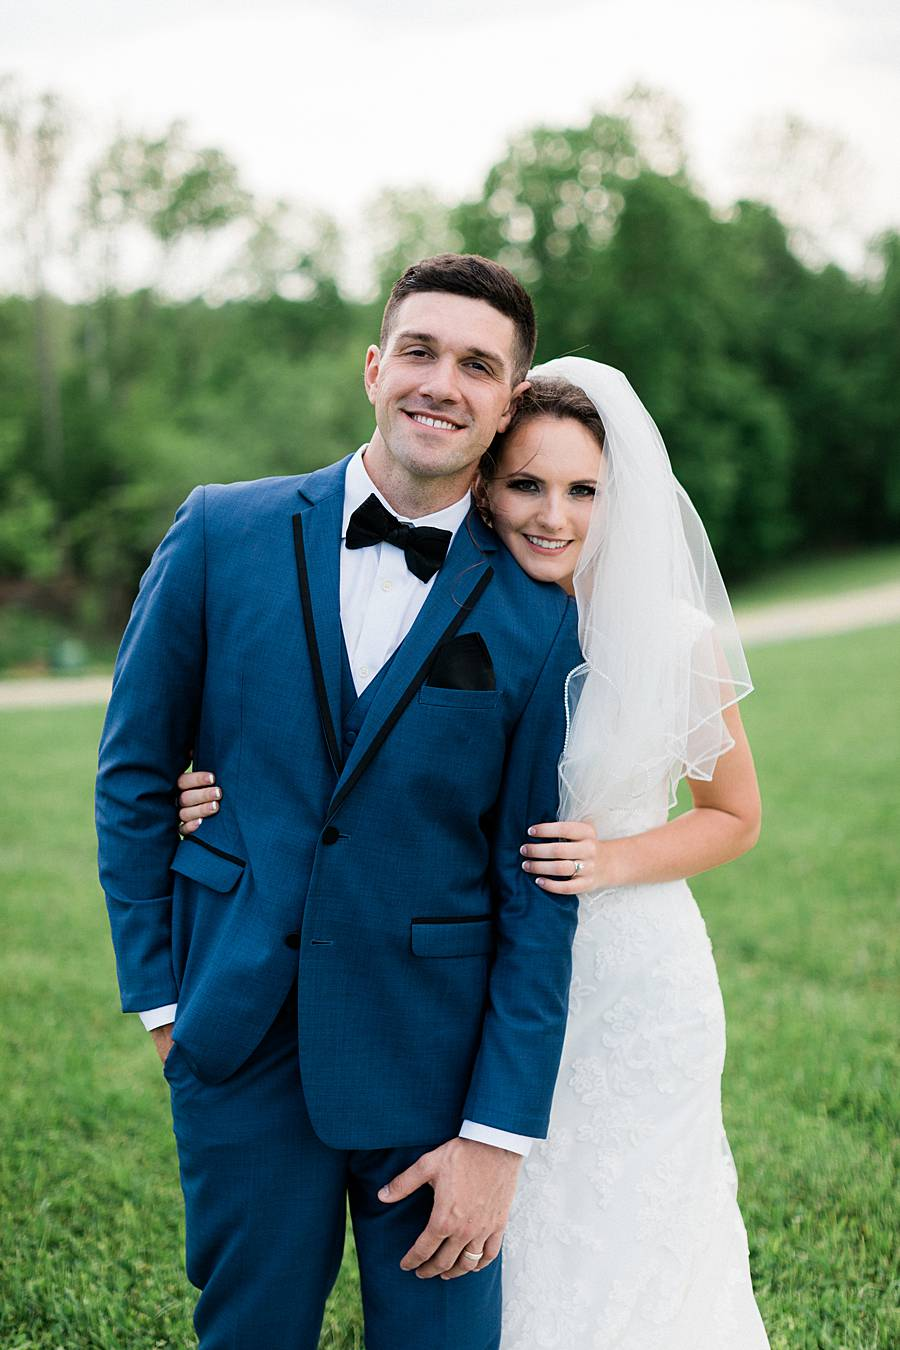 julia ryan kentucky farm wedding 480_web